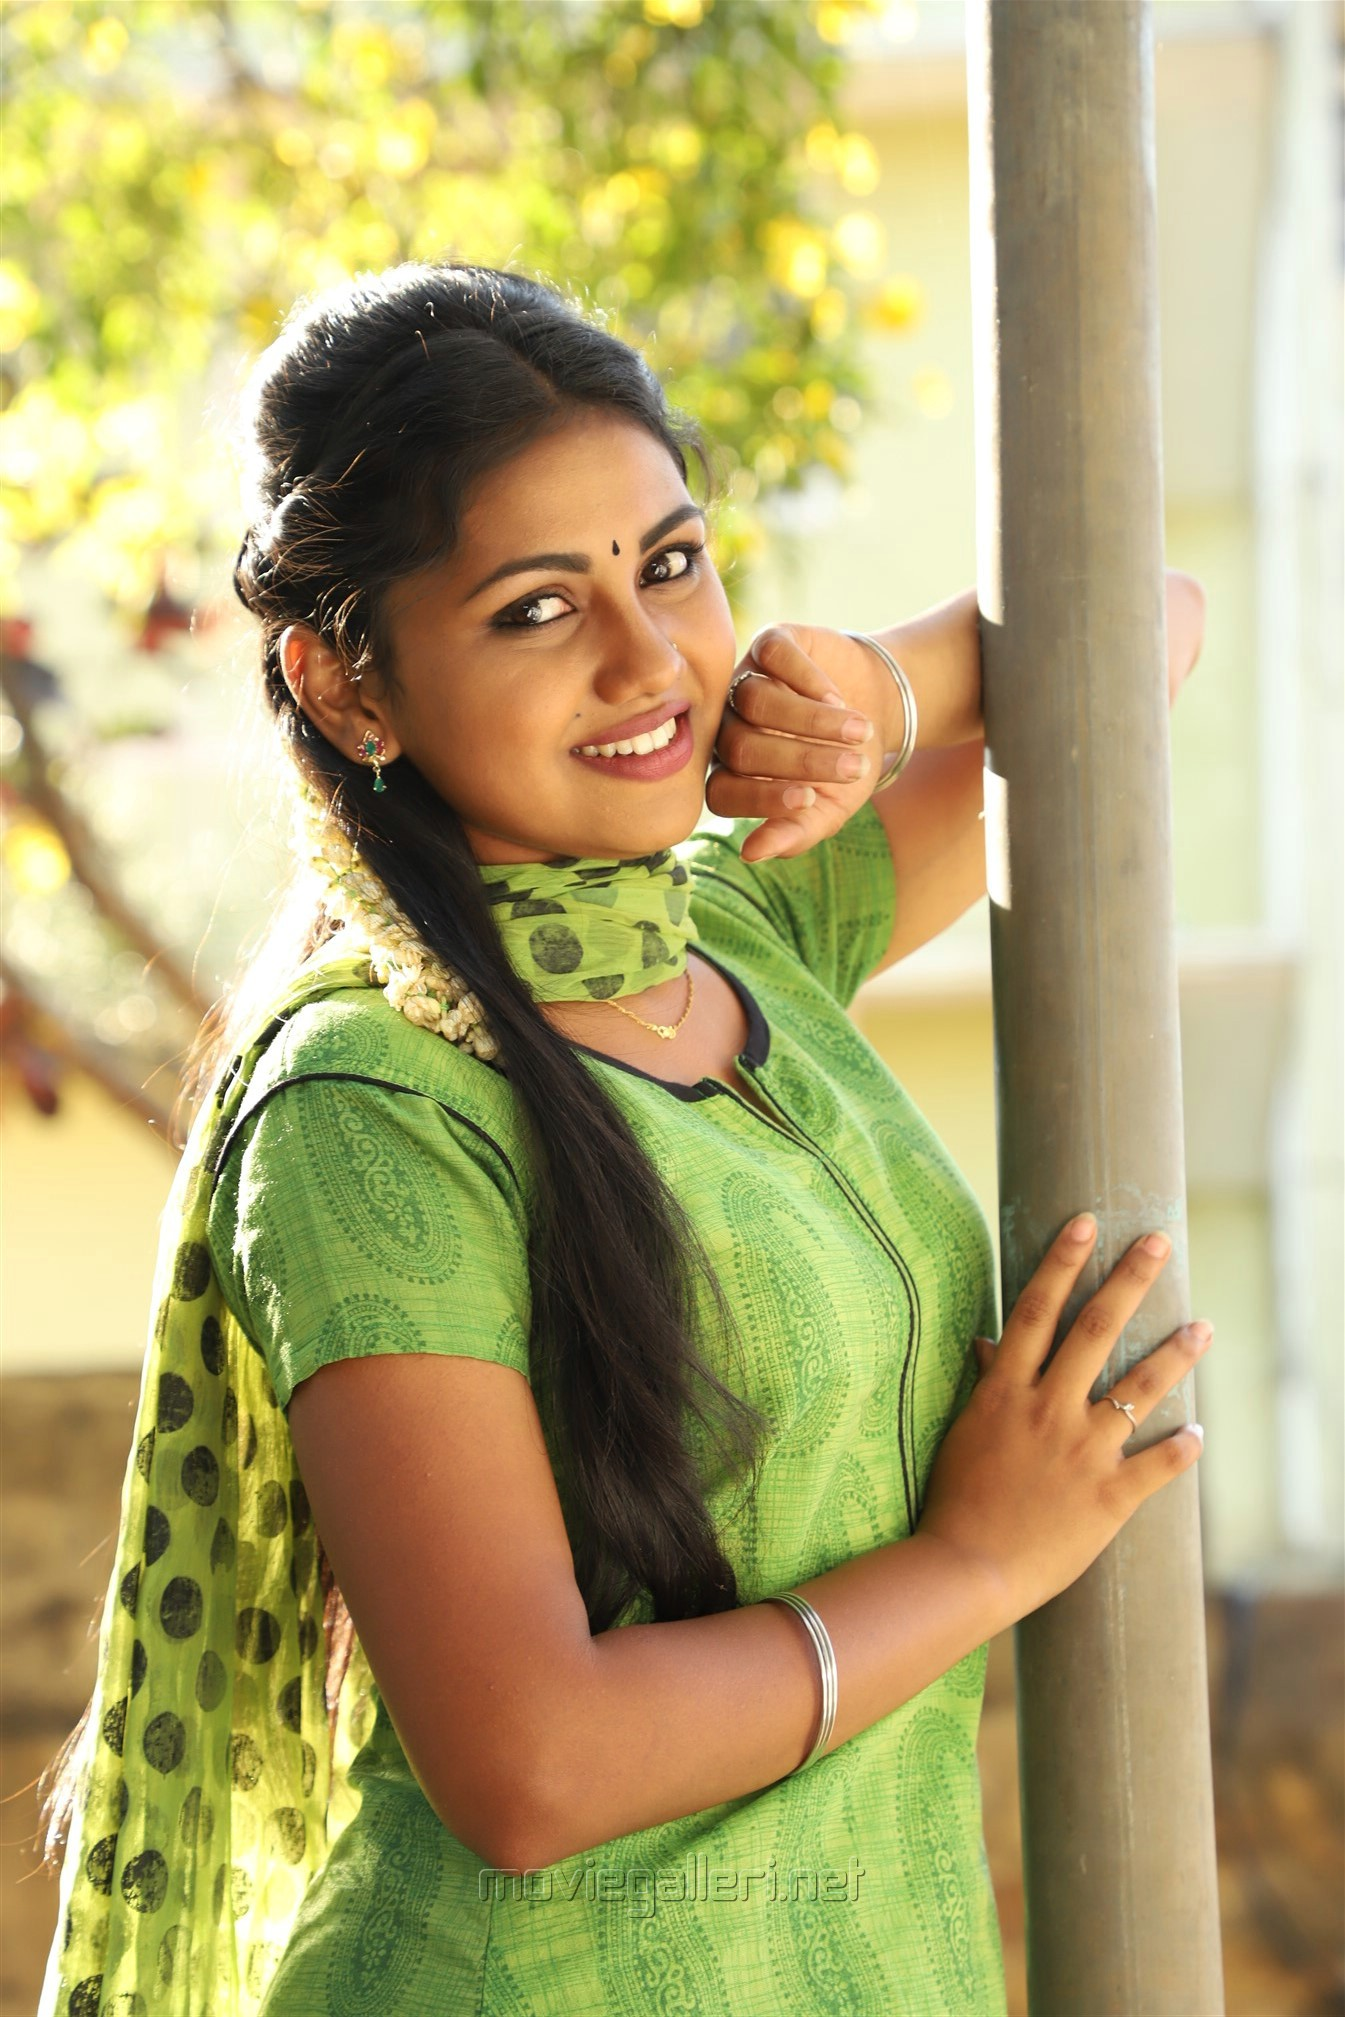 Actress Manishajith in Vakiba Vannakili Barathi Movie Stills